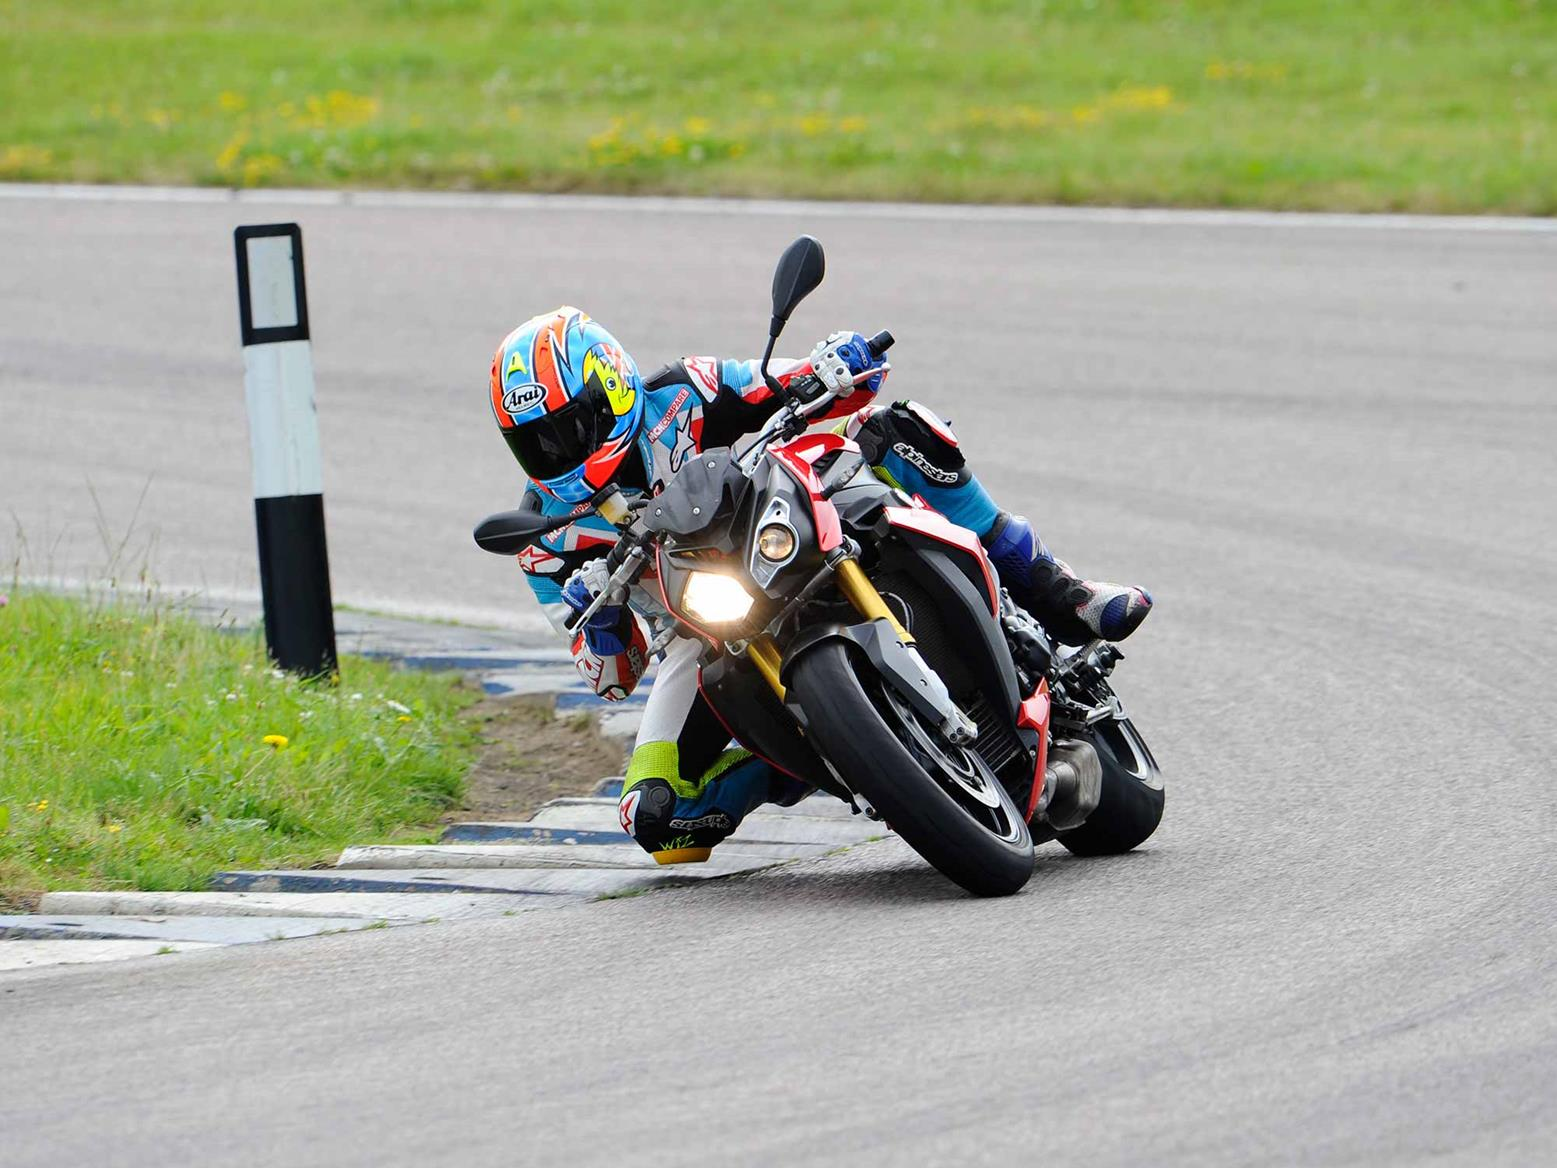 Cornering on the BMW S1000R